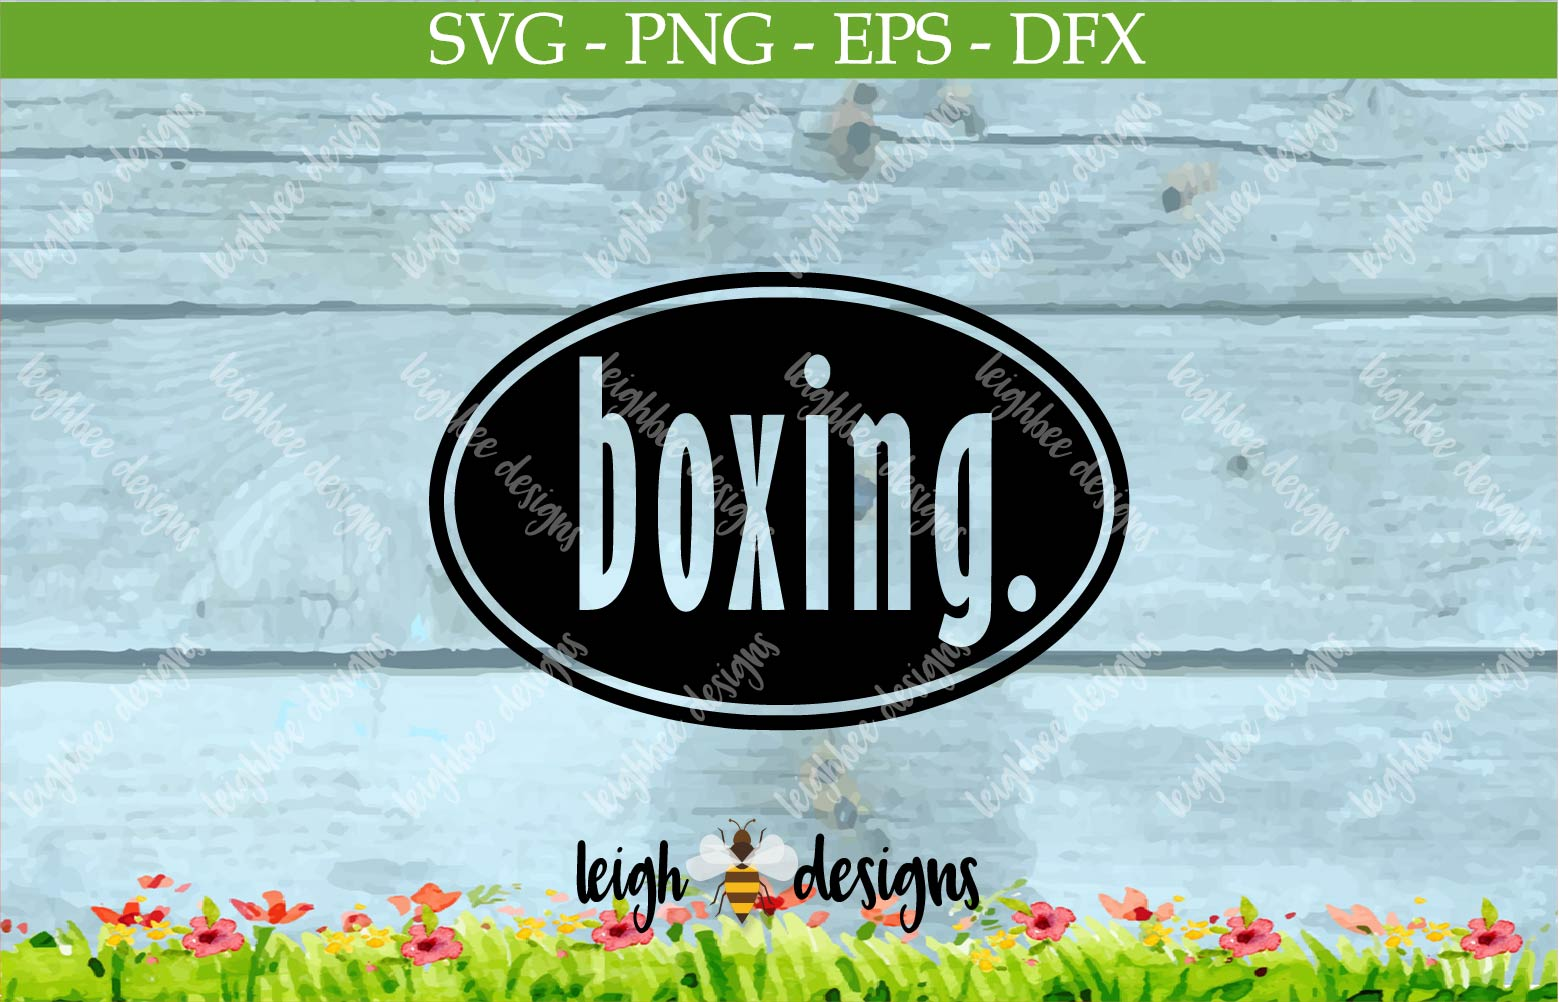 Boxing Oval SVG/DFX/PNG/EPS File  example image 2